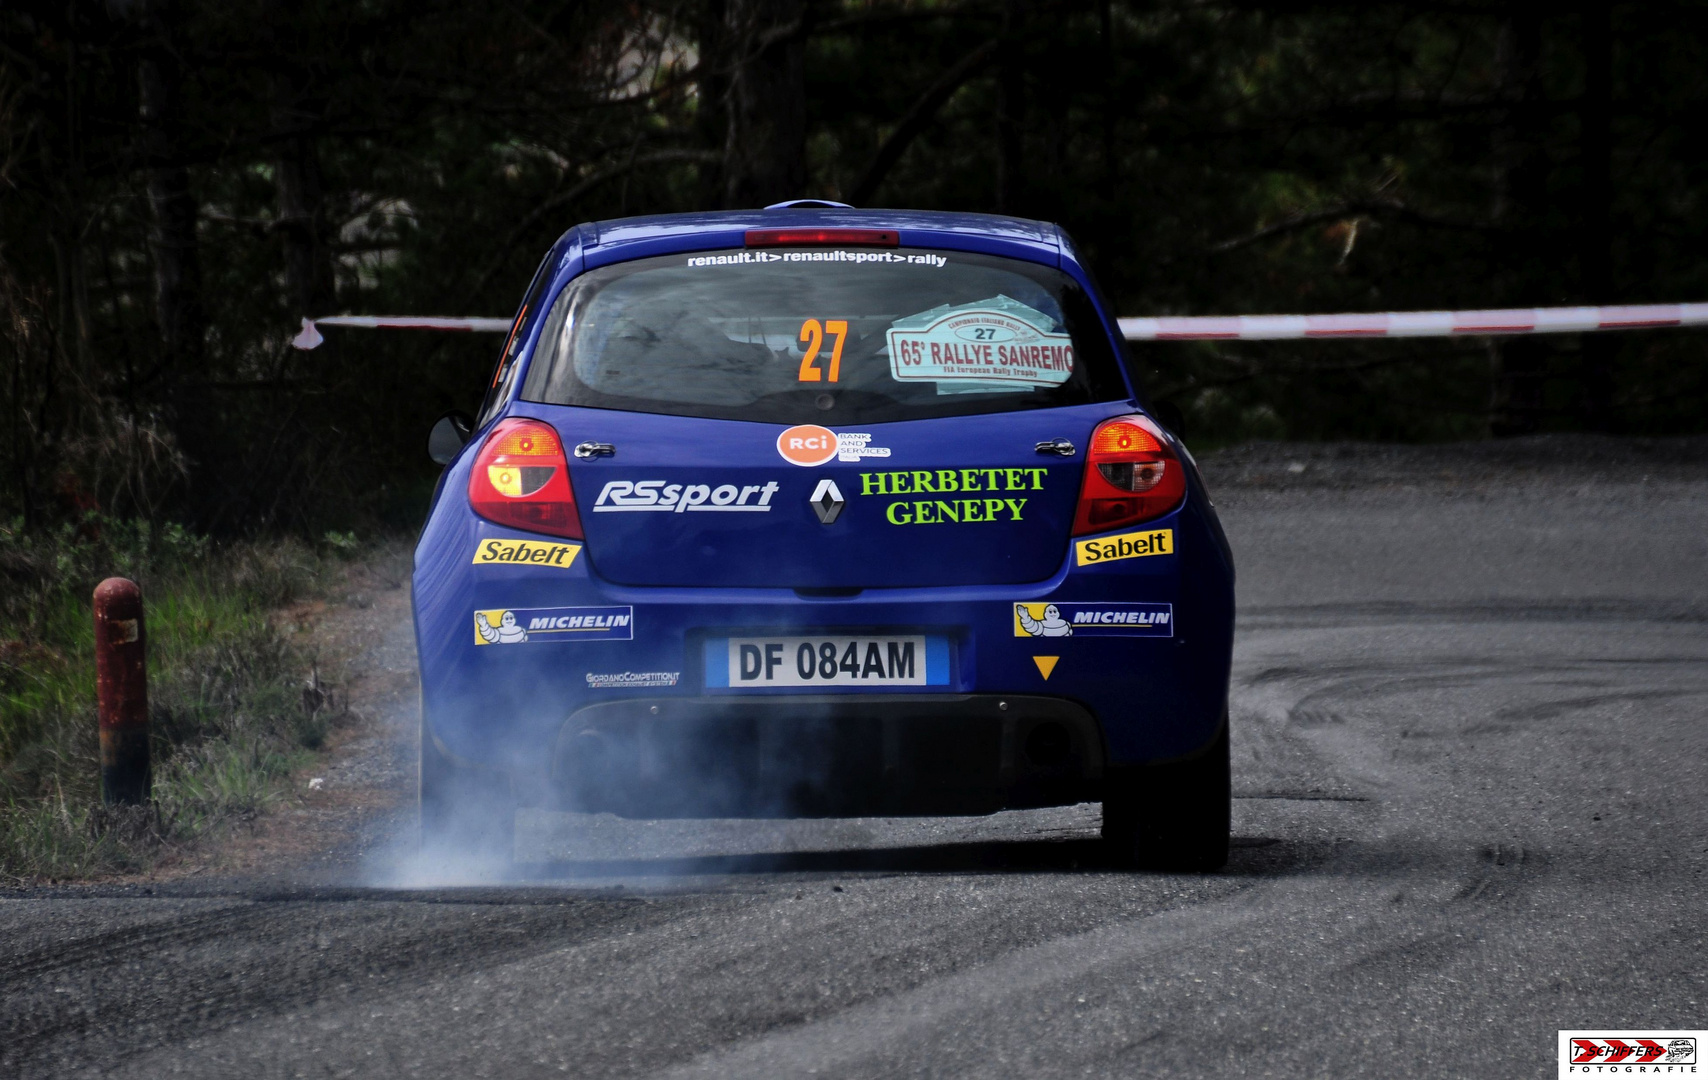 Rallye-Racing @ the Limit